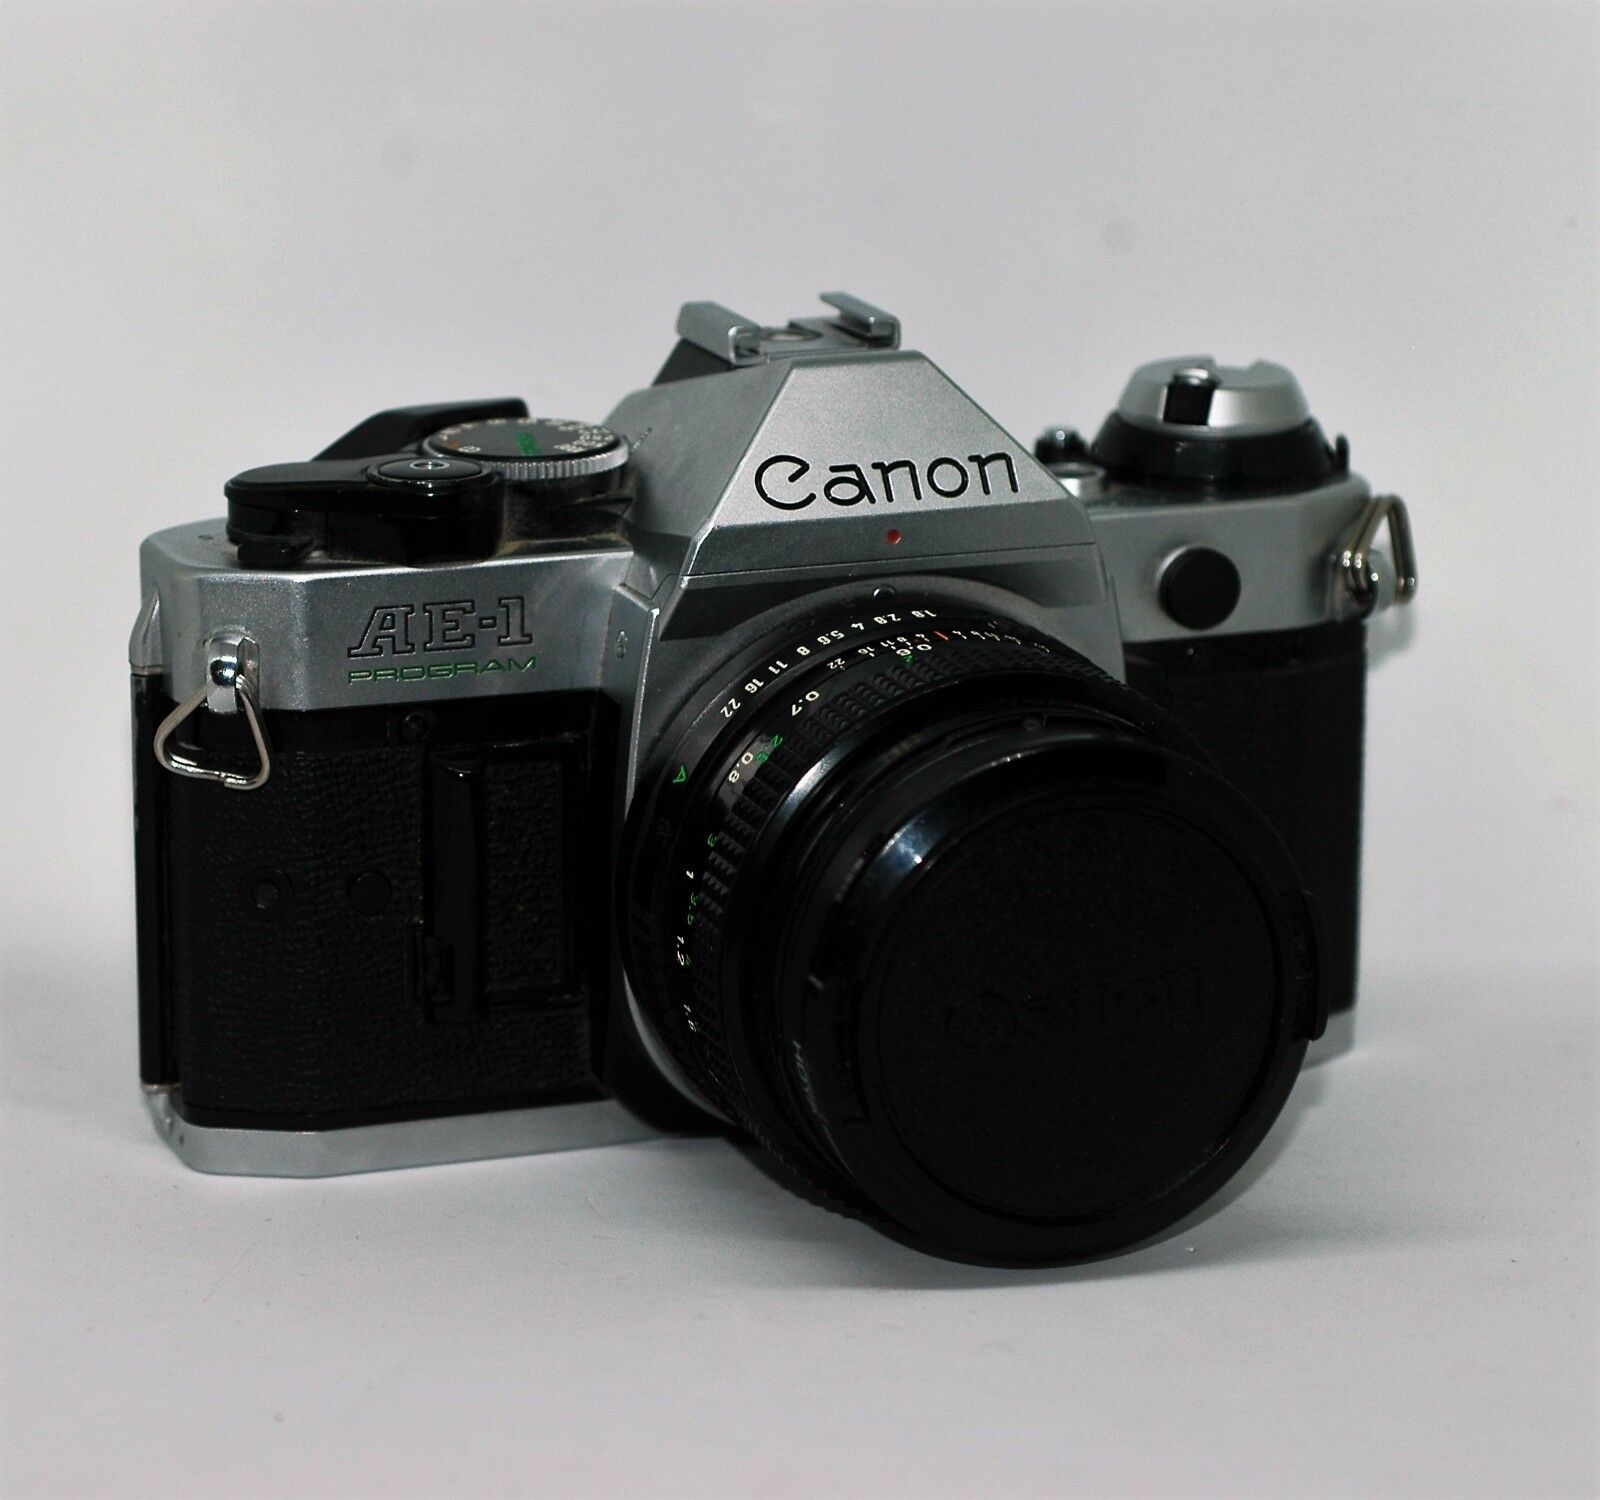 Canon AE-1 35mm SLR Film Camera with FD 50 mm f/1.8 Lens